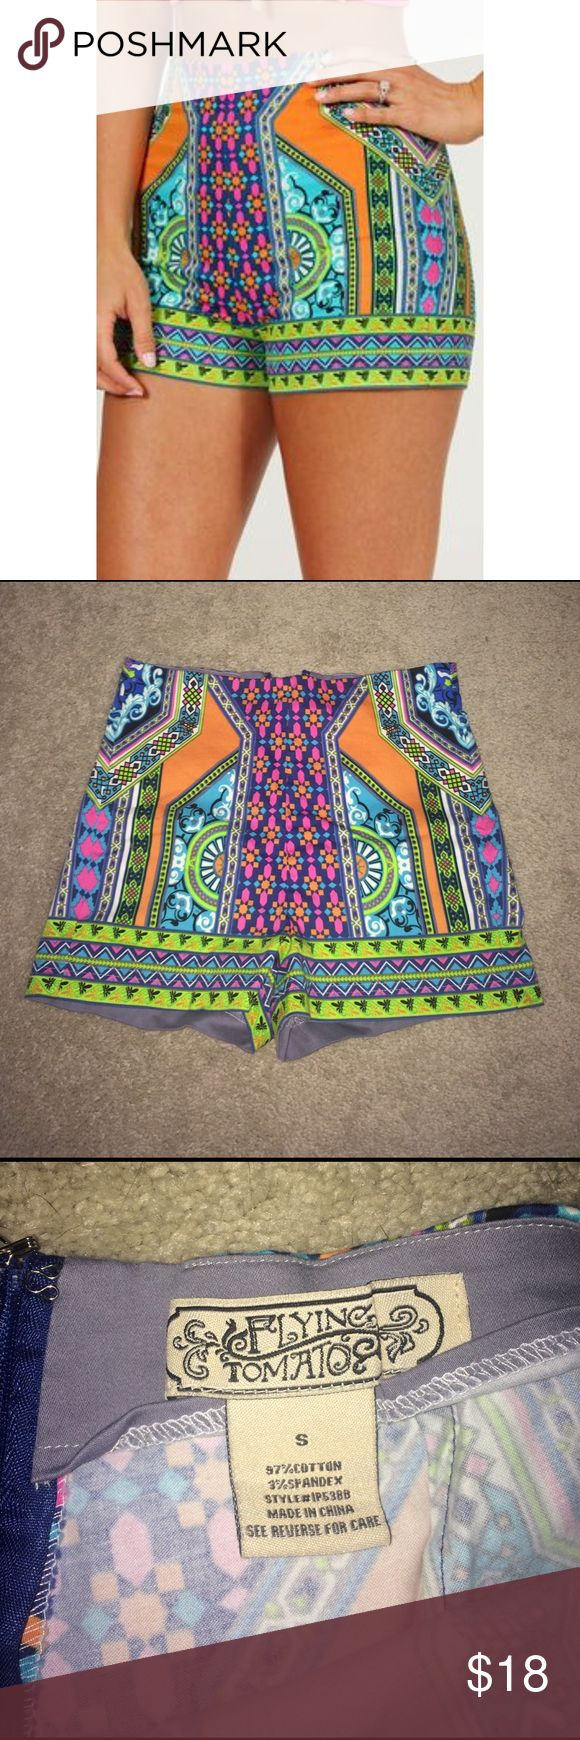 Small Shop Hopes Bright Patterned Shorts NWOT Small high waisted mini shorts from shop hopes! Super colorful and perfect for summer. Sadly never worn, in perfect condition! *all offers considered!* *smoke free home* Shorts